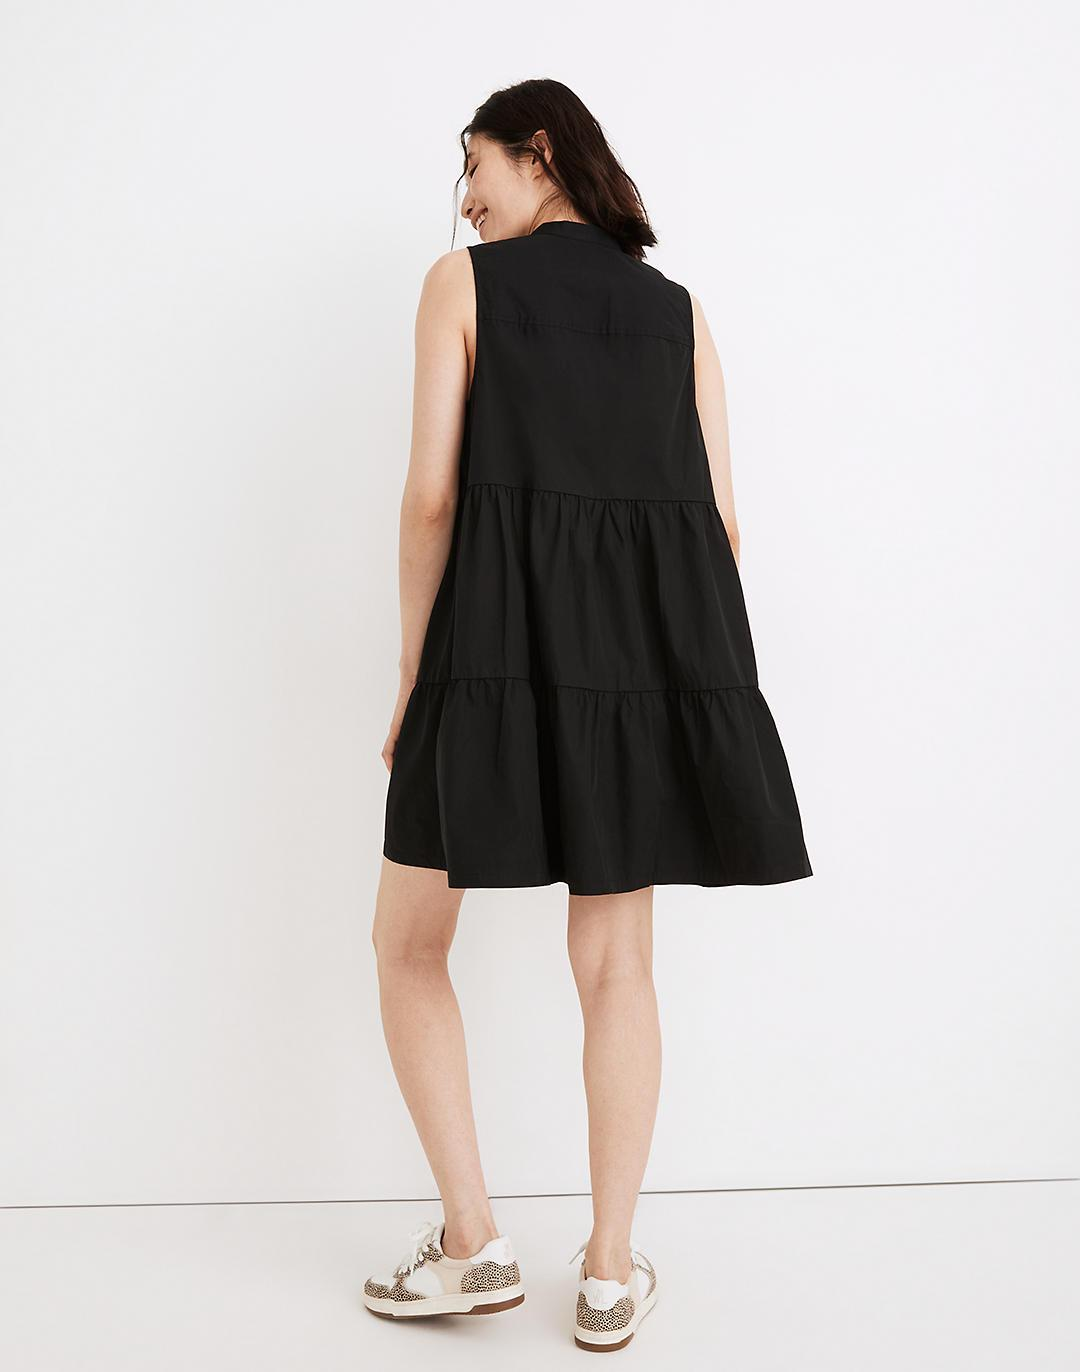 Banded-Collar Tiered Dress 2